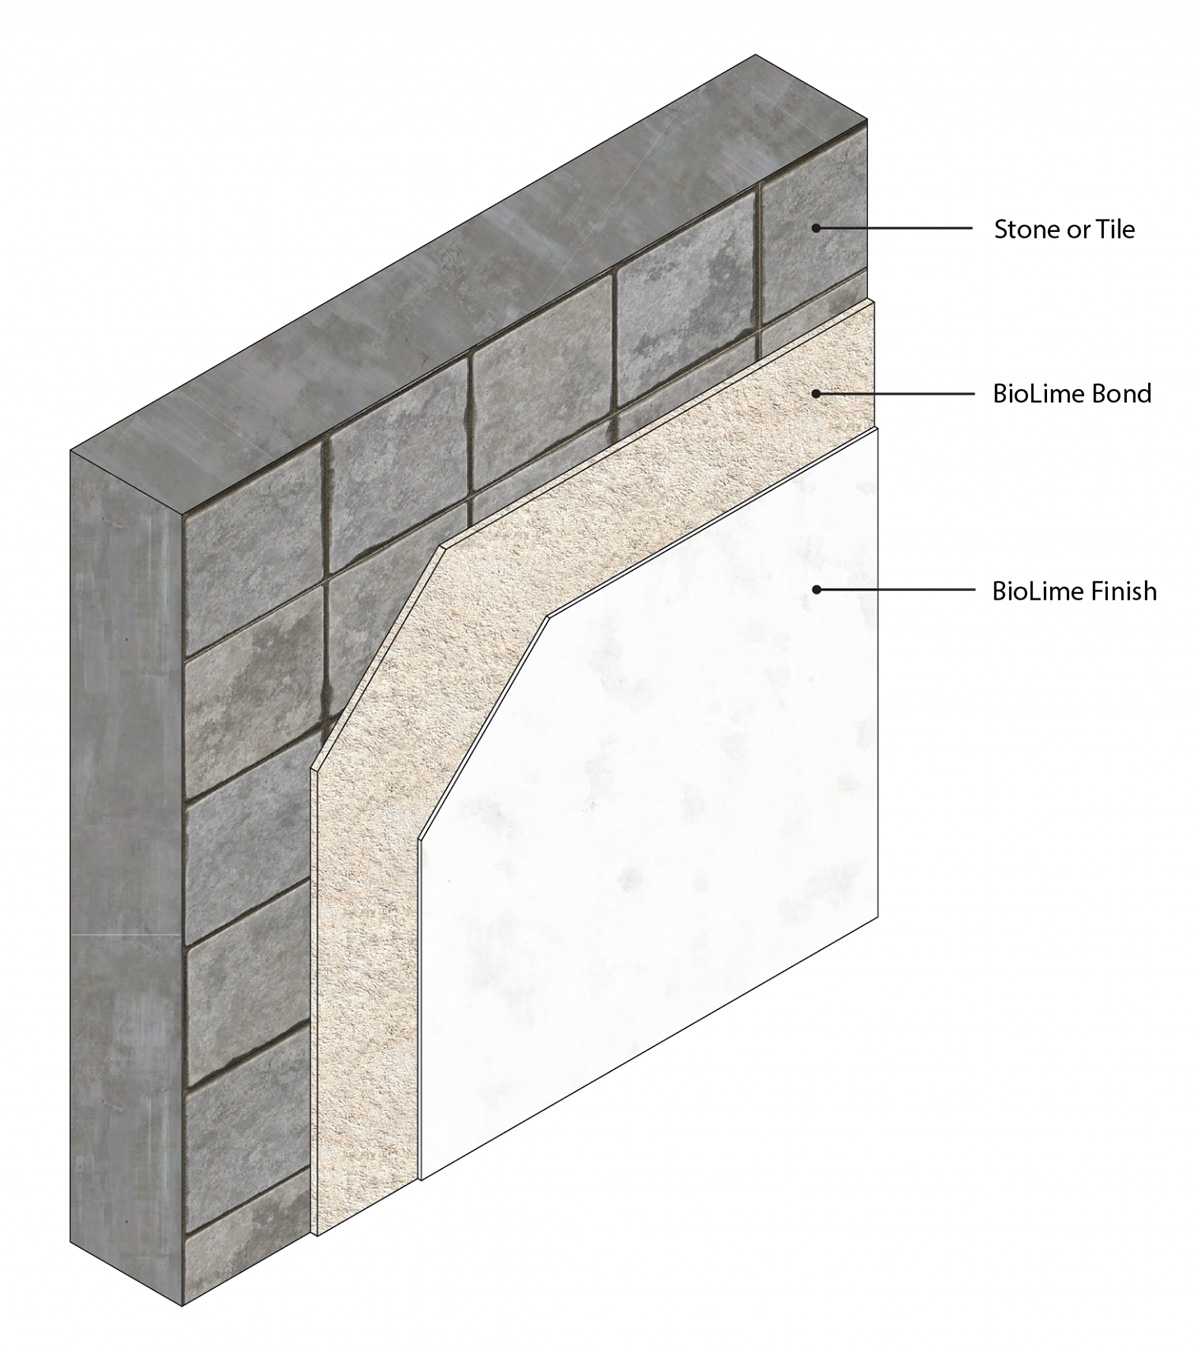 3D isometric image of BioLime plaster for a stone and tile surface